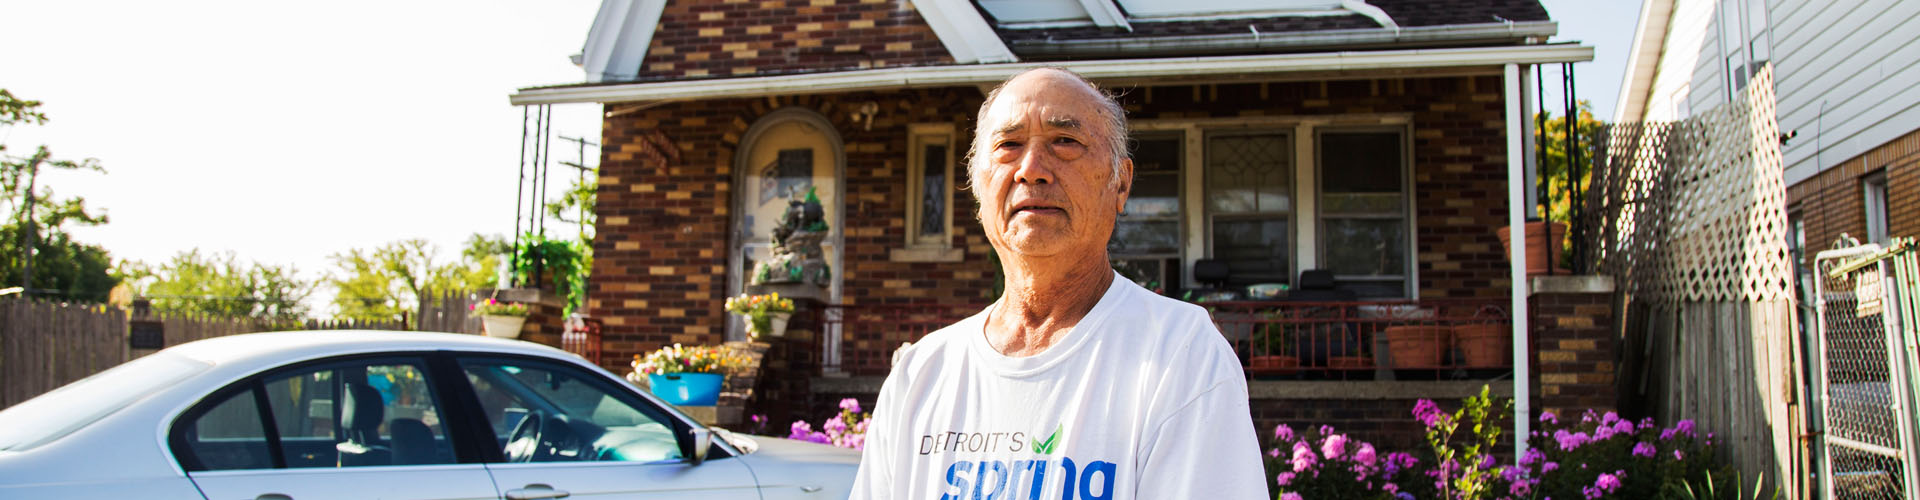 Naoying Yang stands in front of his house in Detroit